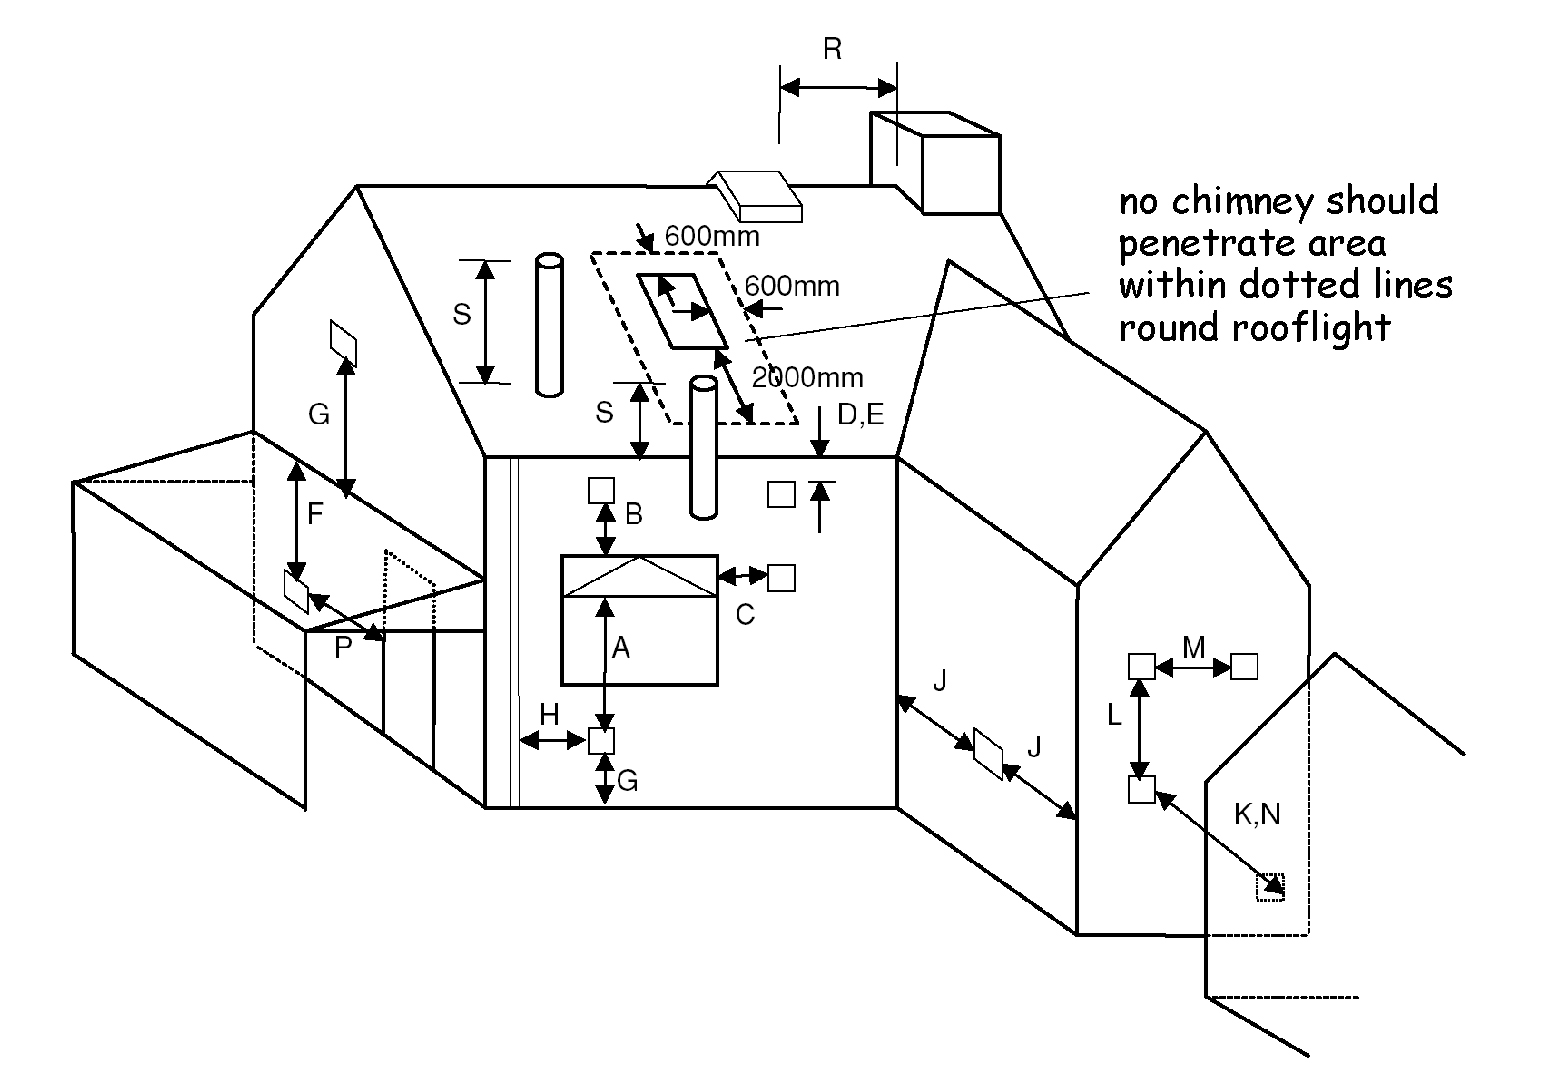 hight resolution of gas fired flue outlets